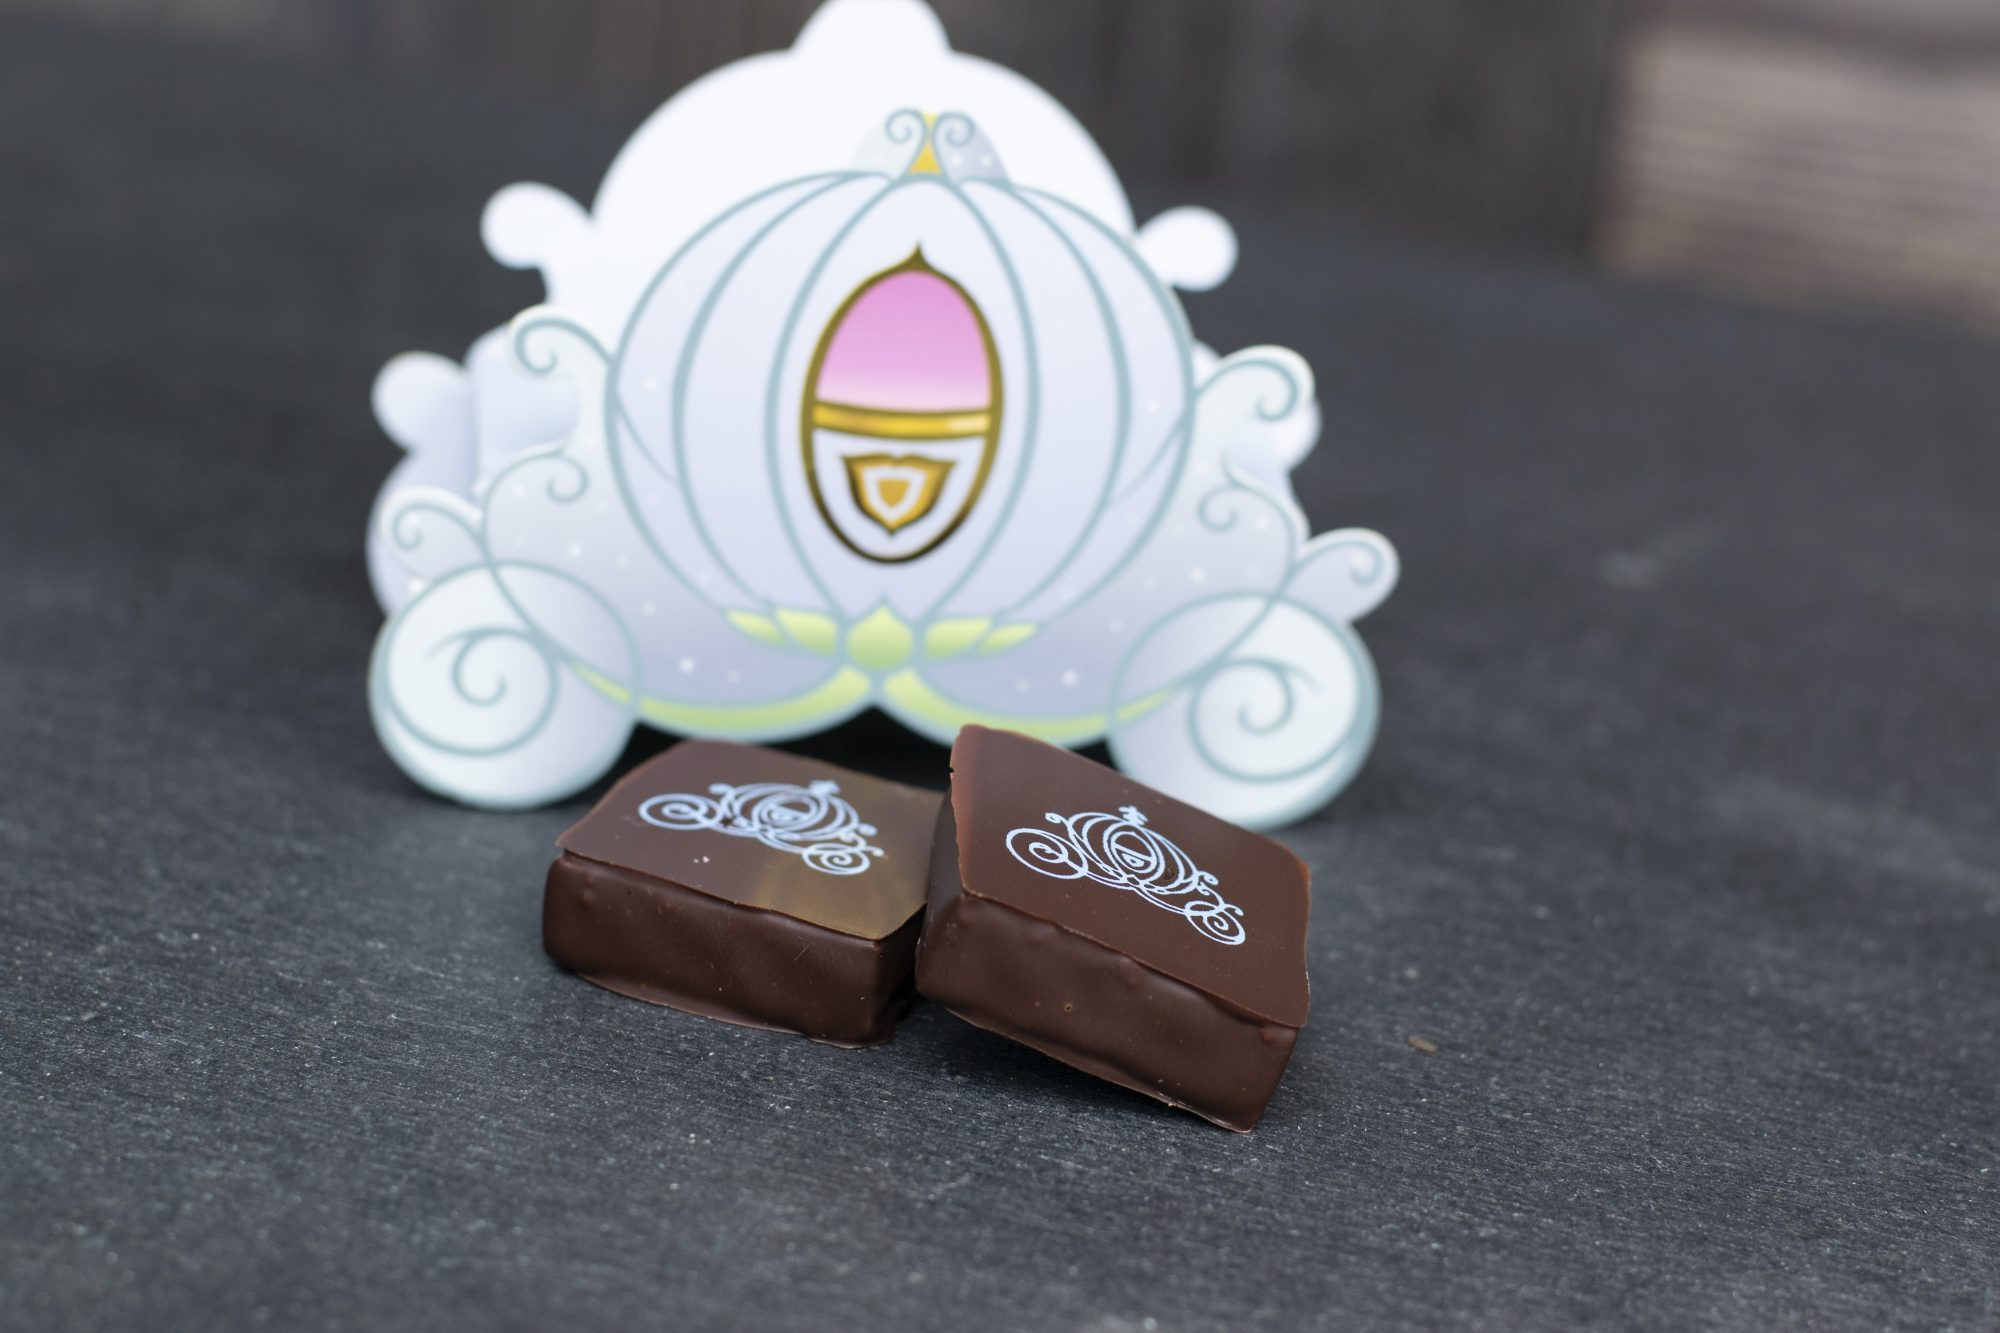 Disney-themed chocolate ganache squares decorated with a white stencil of Cinderella's carriage